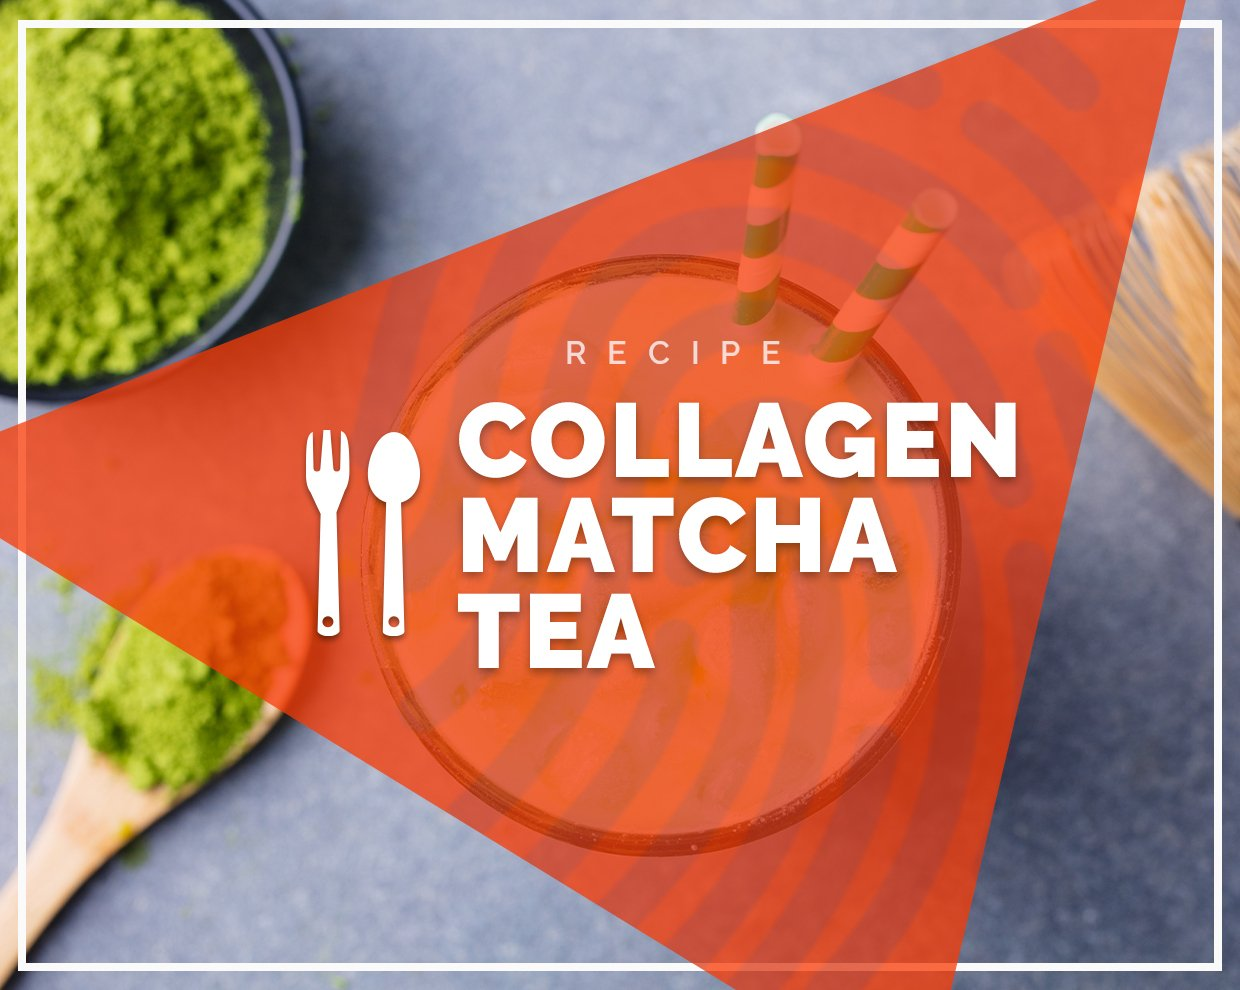 Collagen Matcha Tea